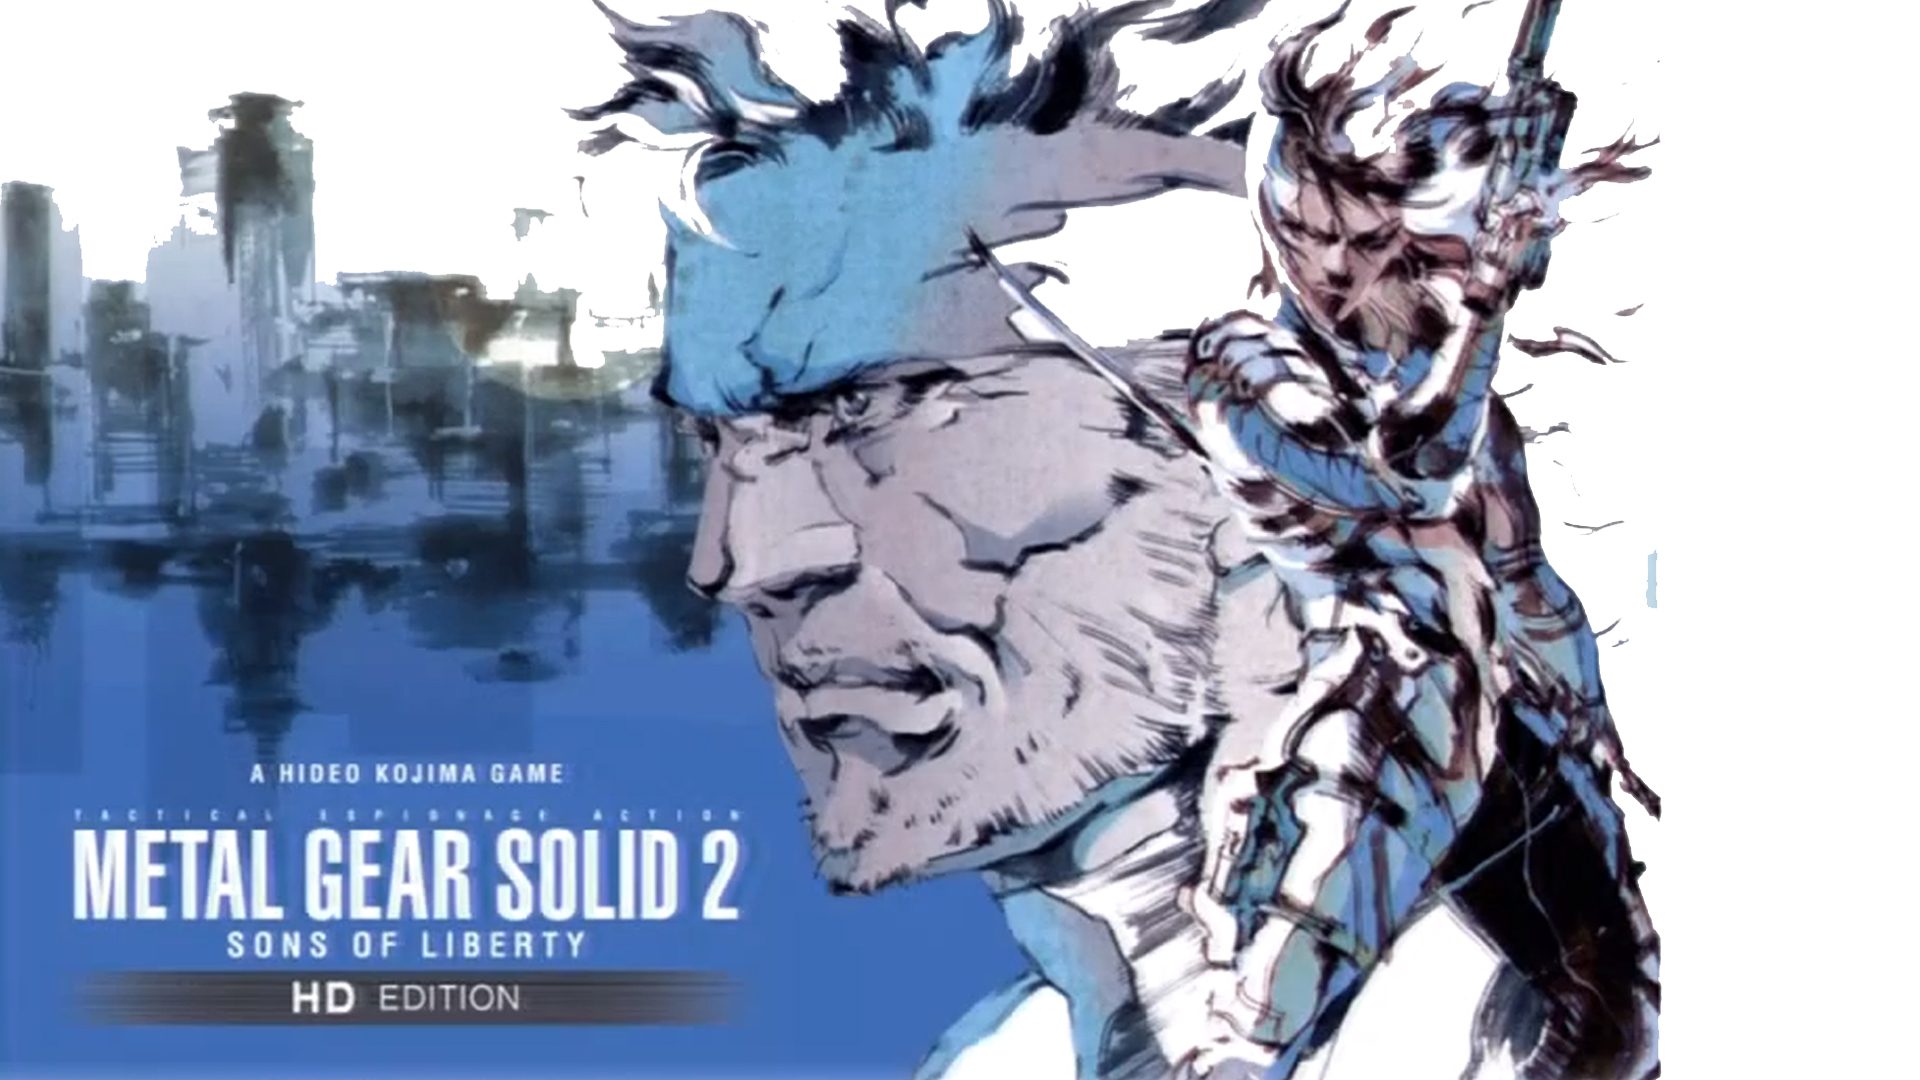 Metal Gear Solid 2 Wallpaper 339349 Hd Wallpaper